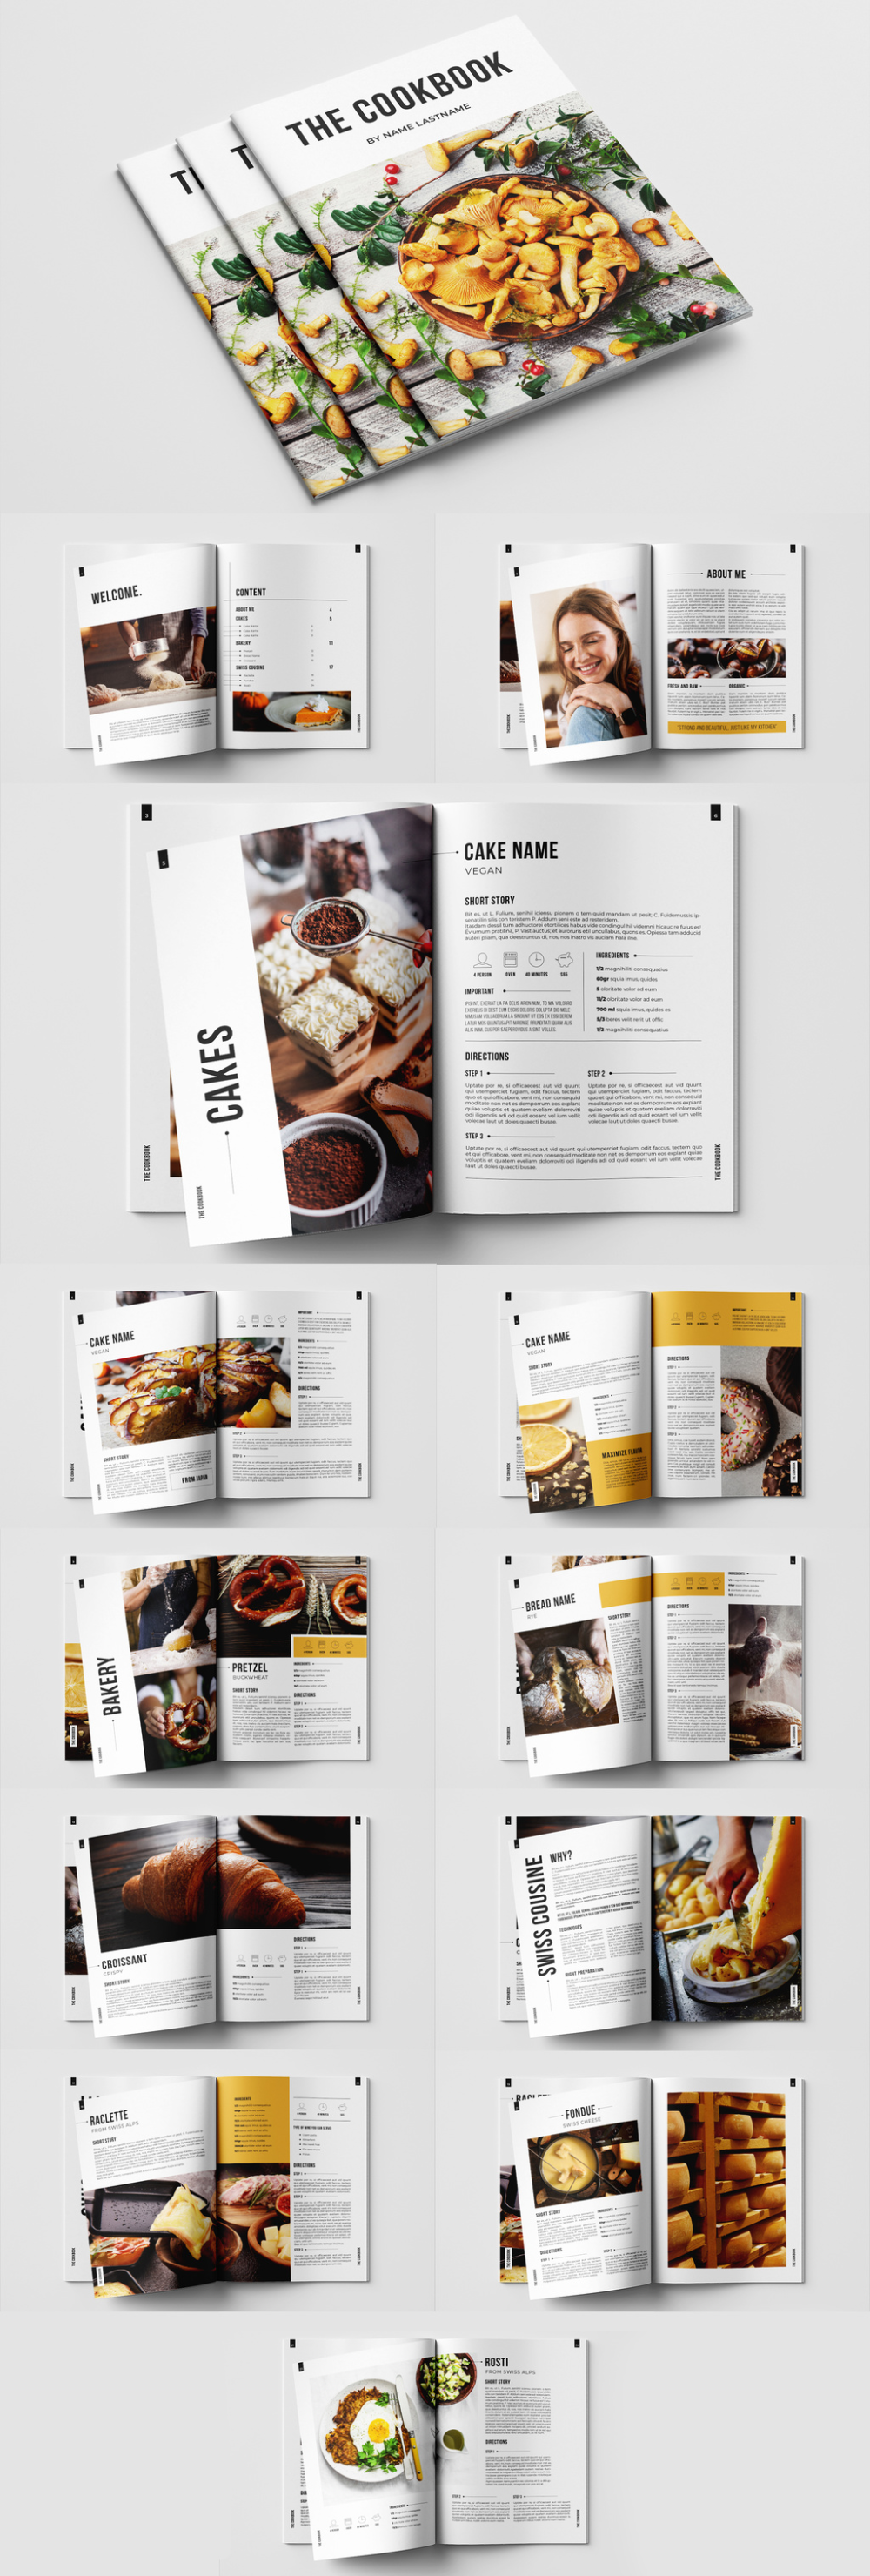 Cookbook Layout With Orange Accents Buy This Stock Template And Explore Similar Templates At Adobe Stock Adobe In 2021 Templates Recipe Template Royalty Free Images